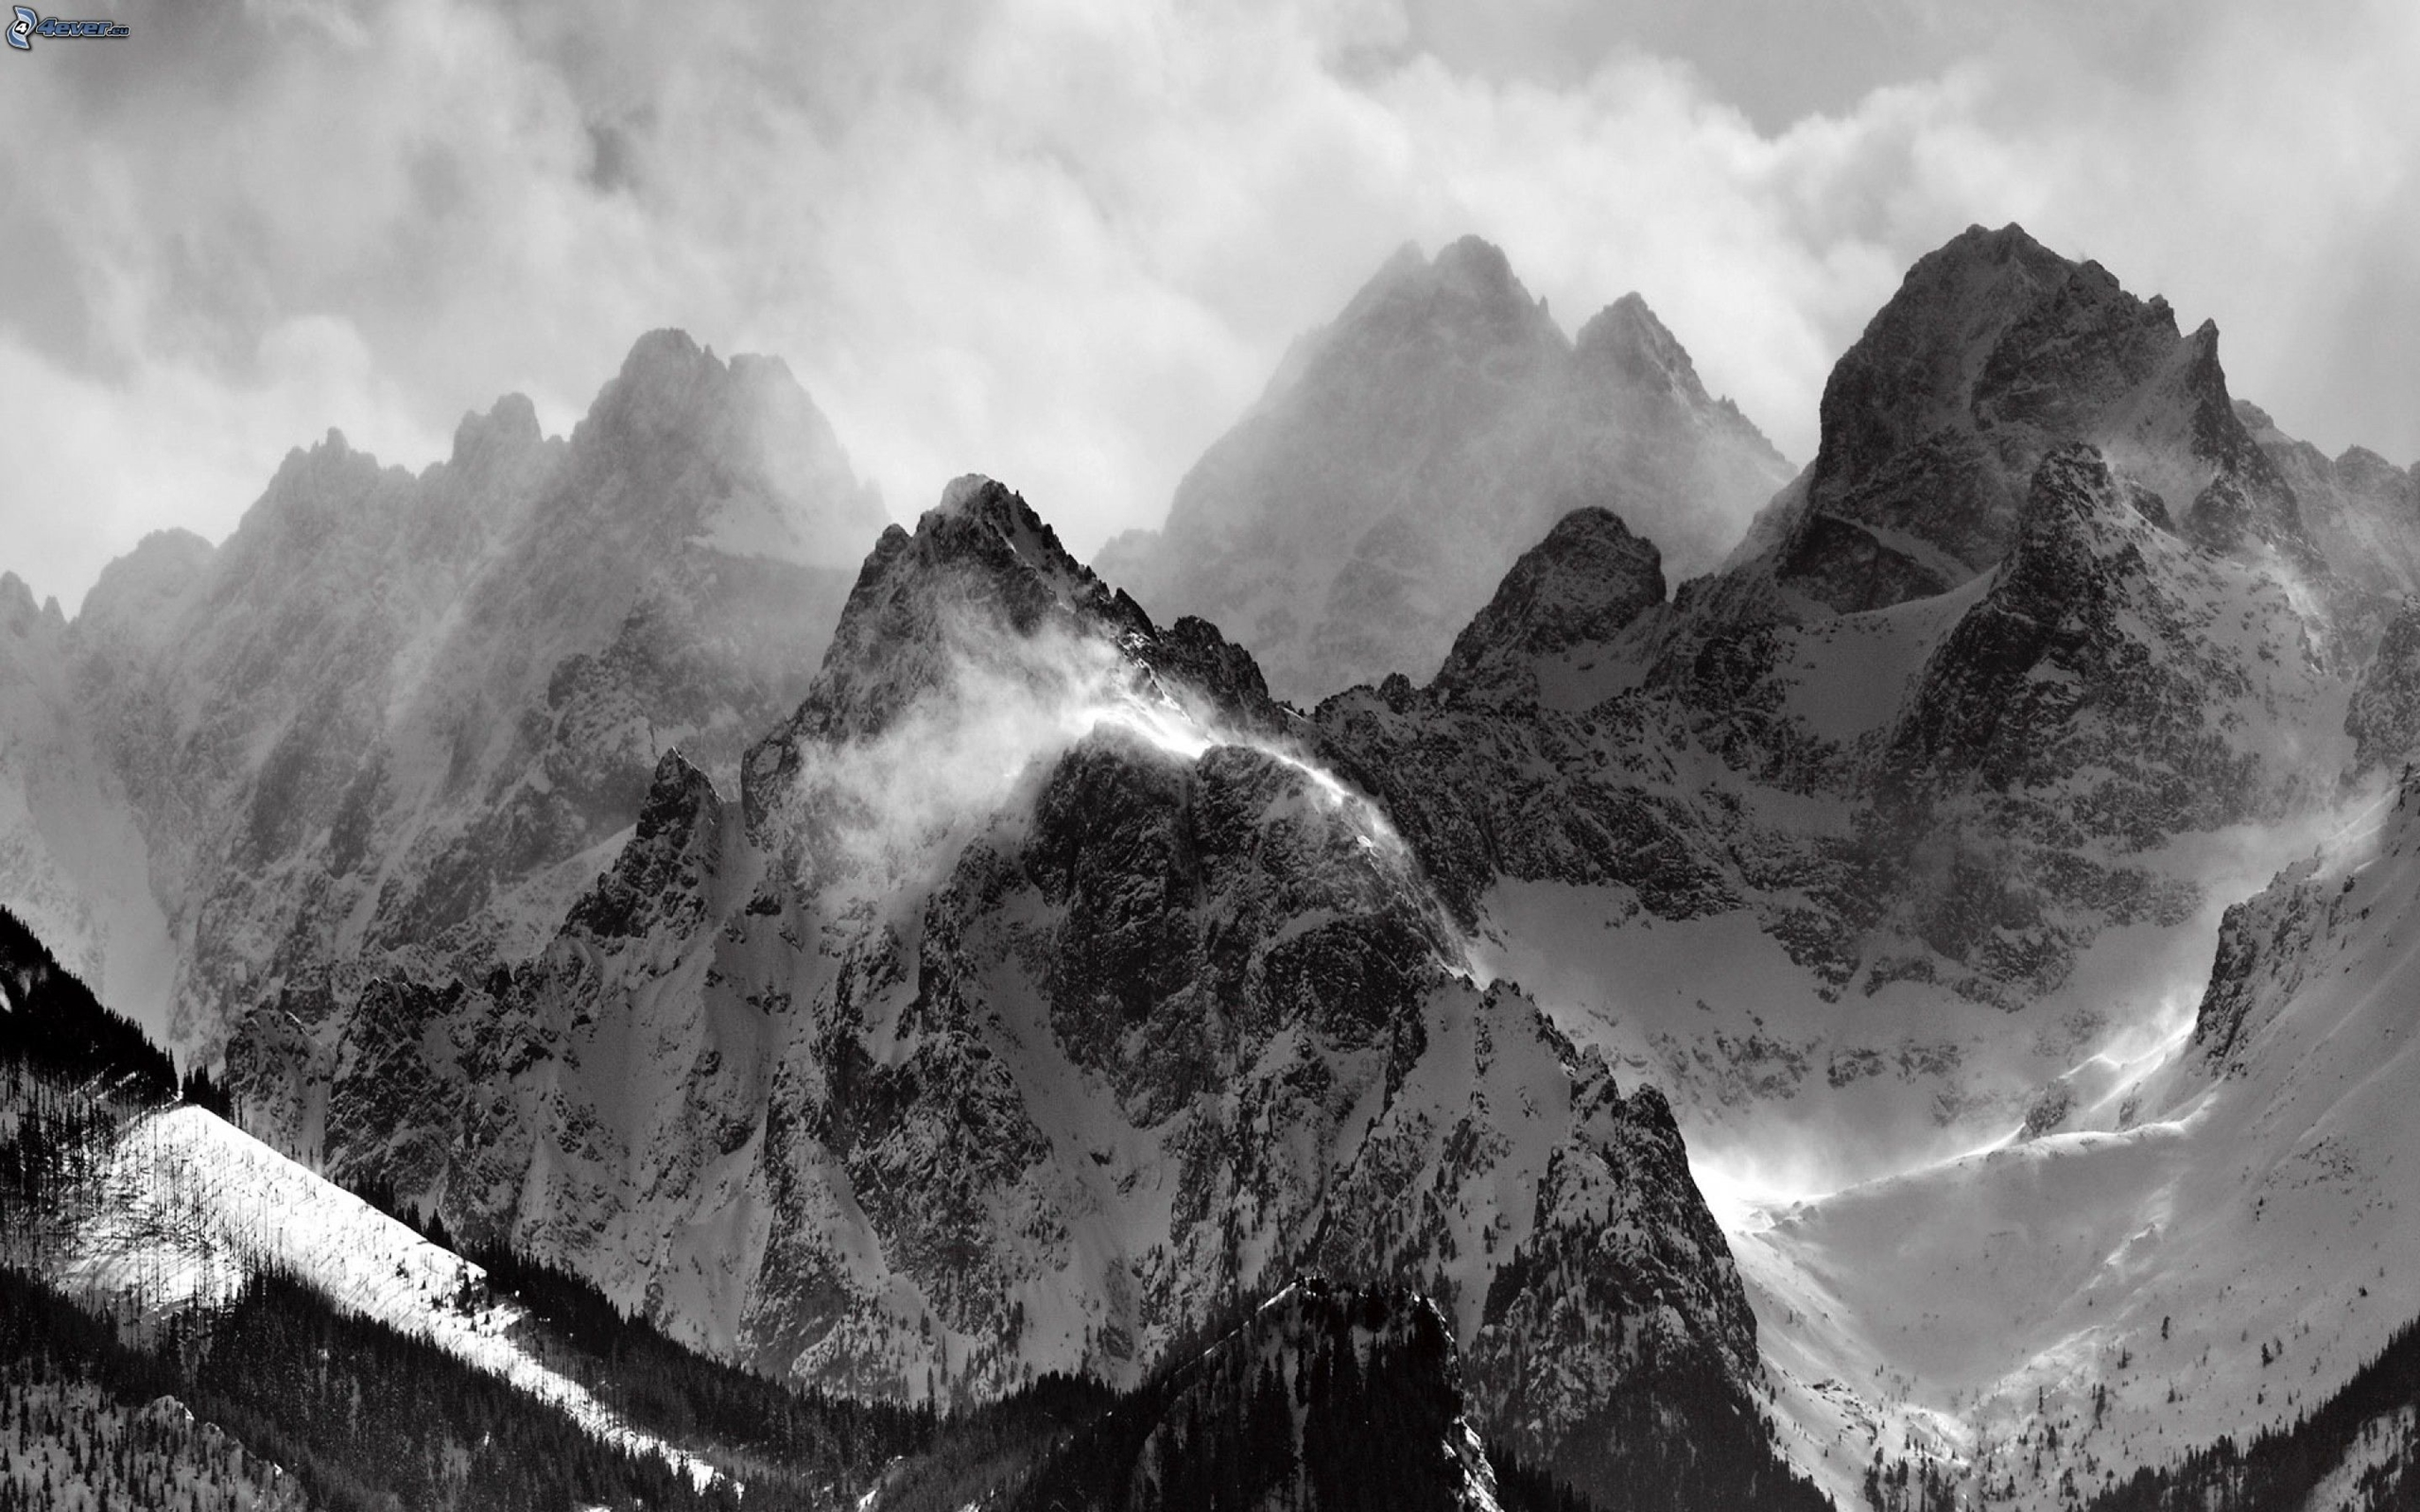 Snowy Mountains, Clouds, Black And White 194537 : Wallpapers13.com